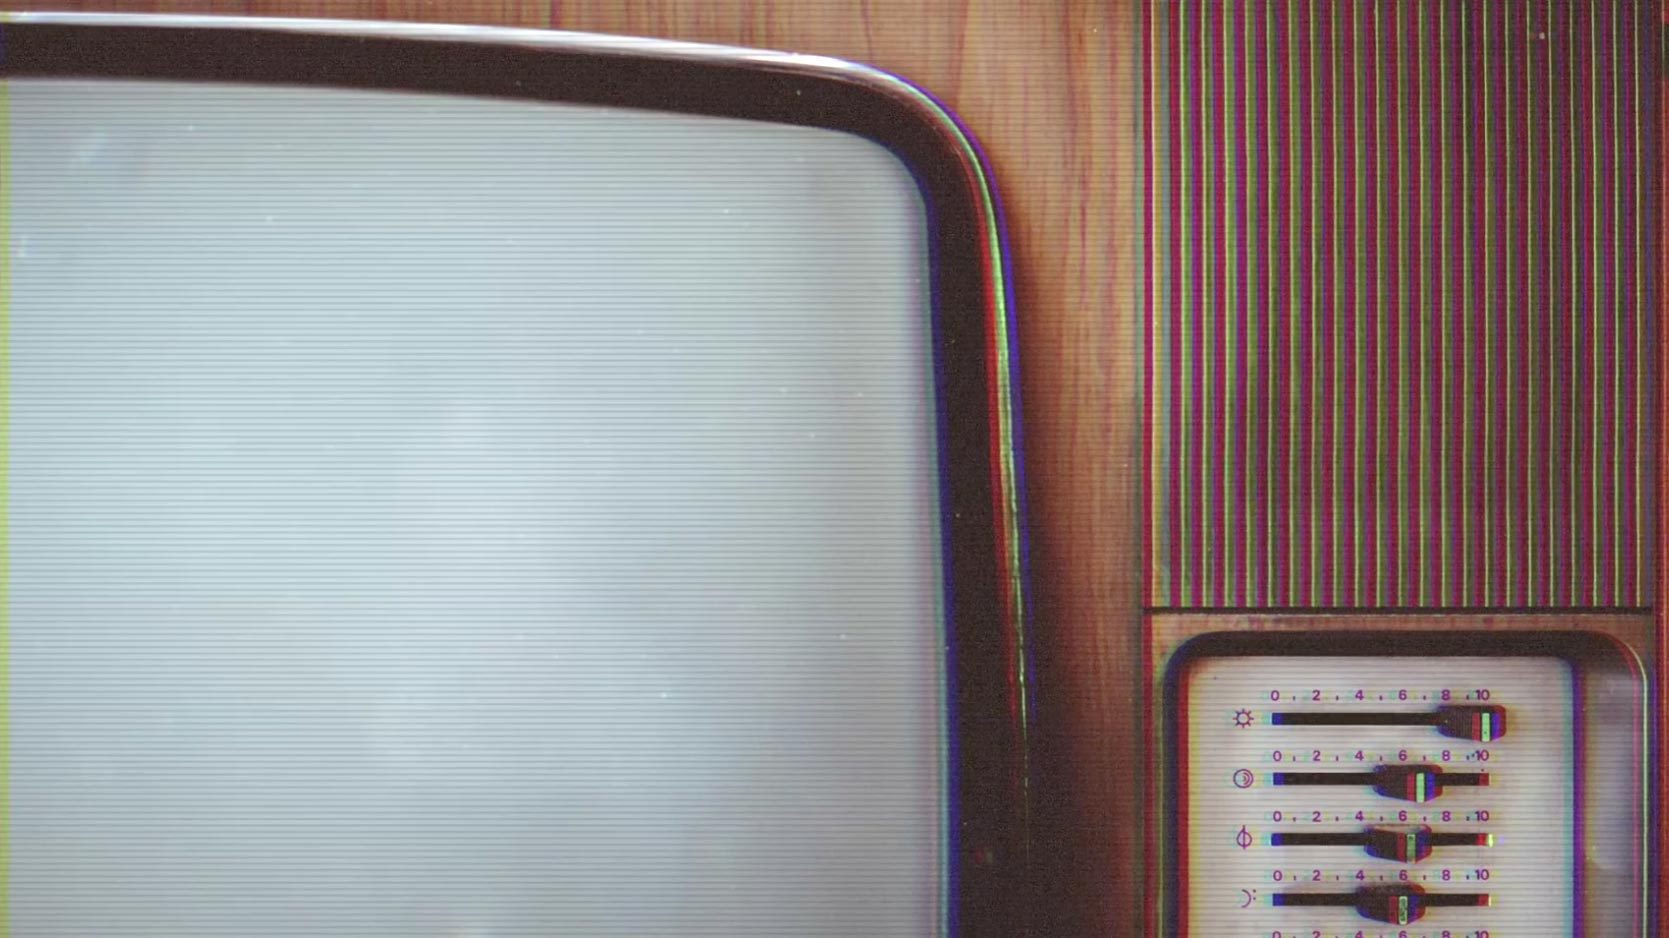 Sorry, your browser doesn't support HTML video